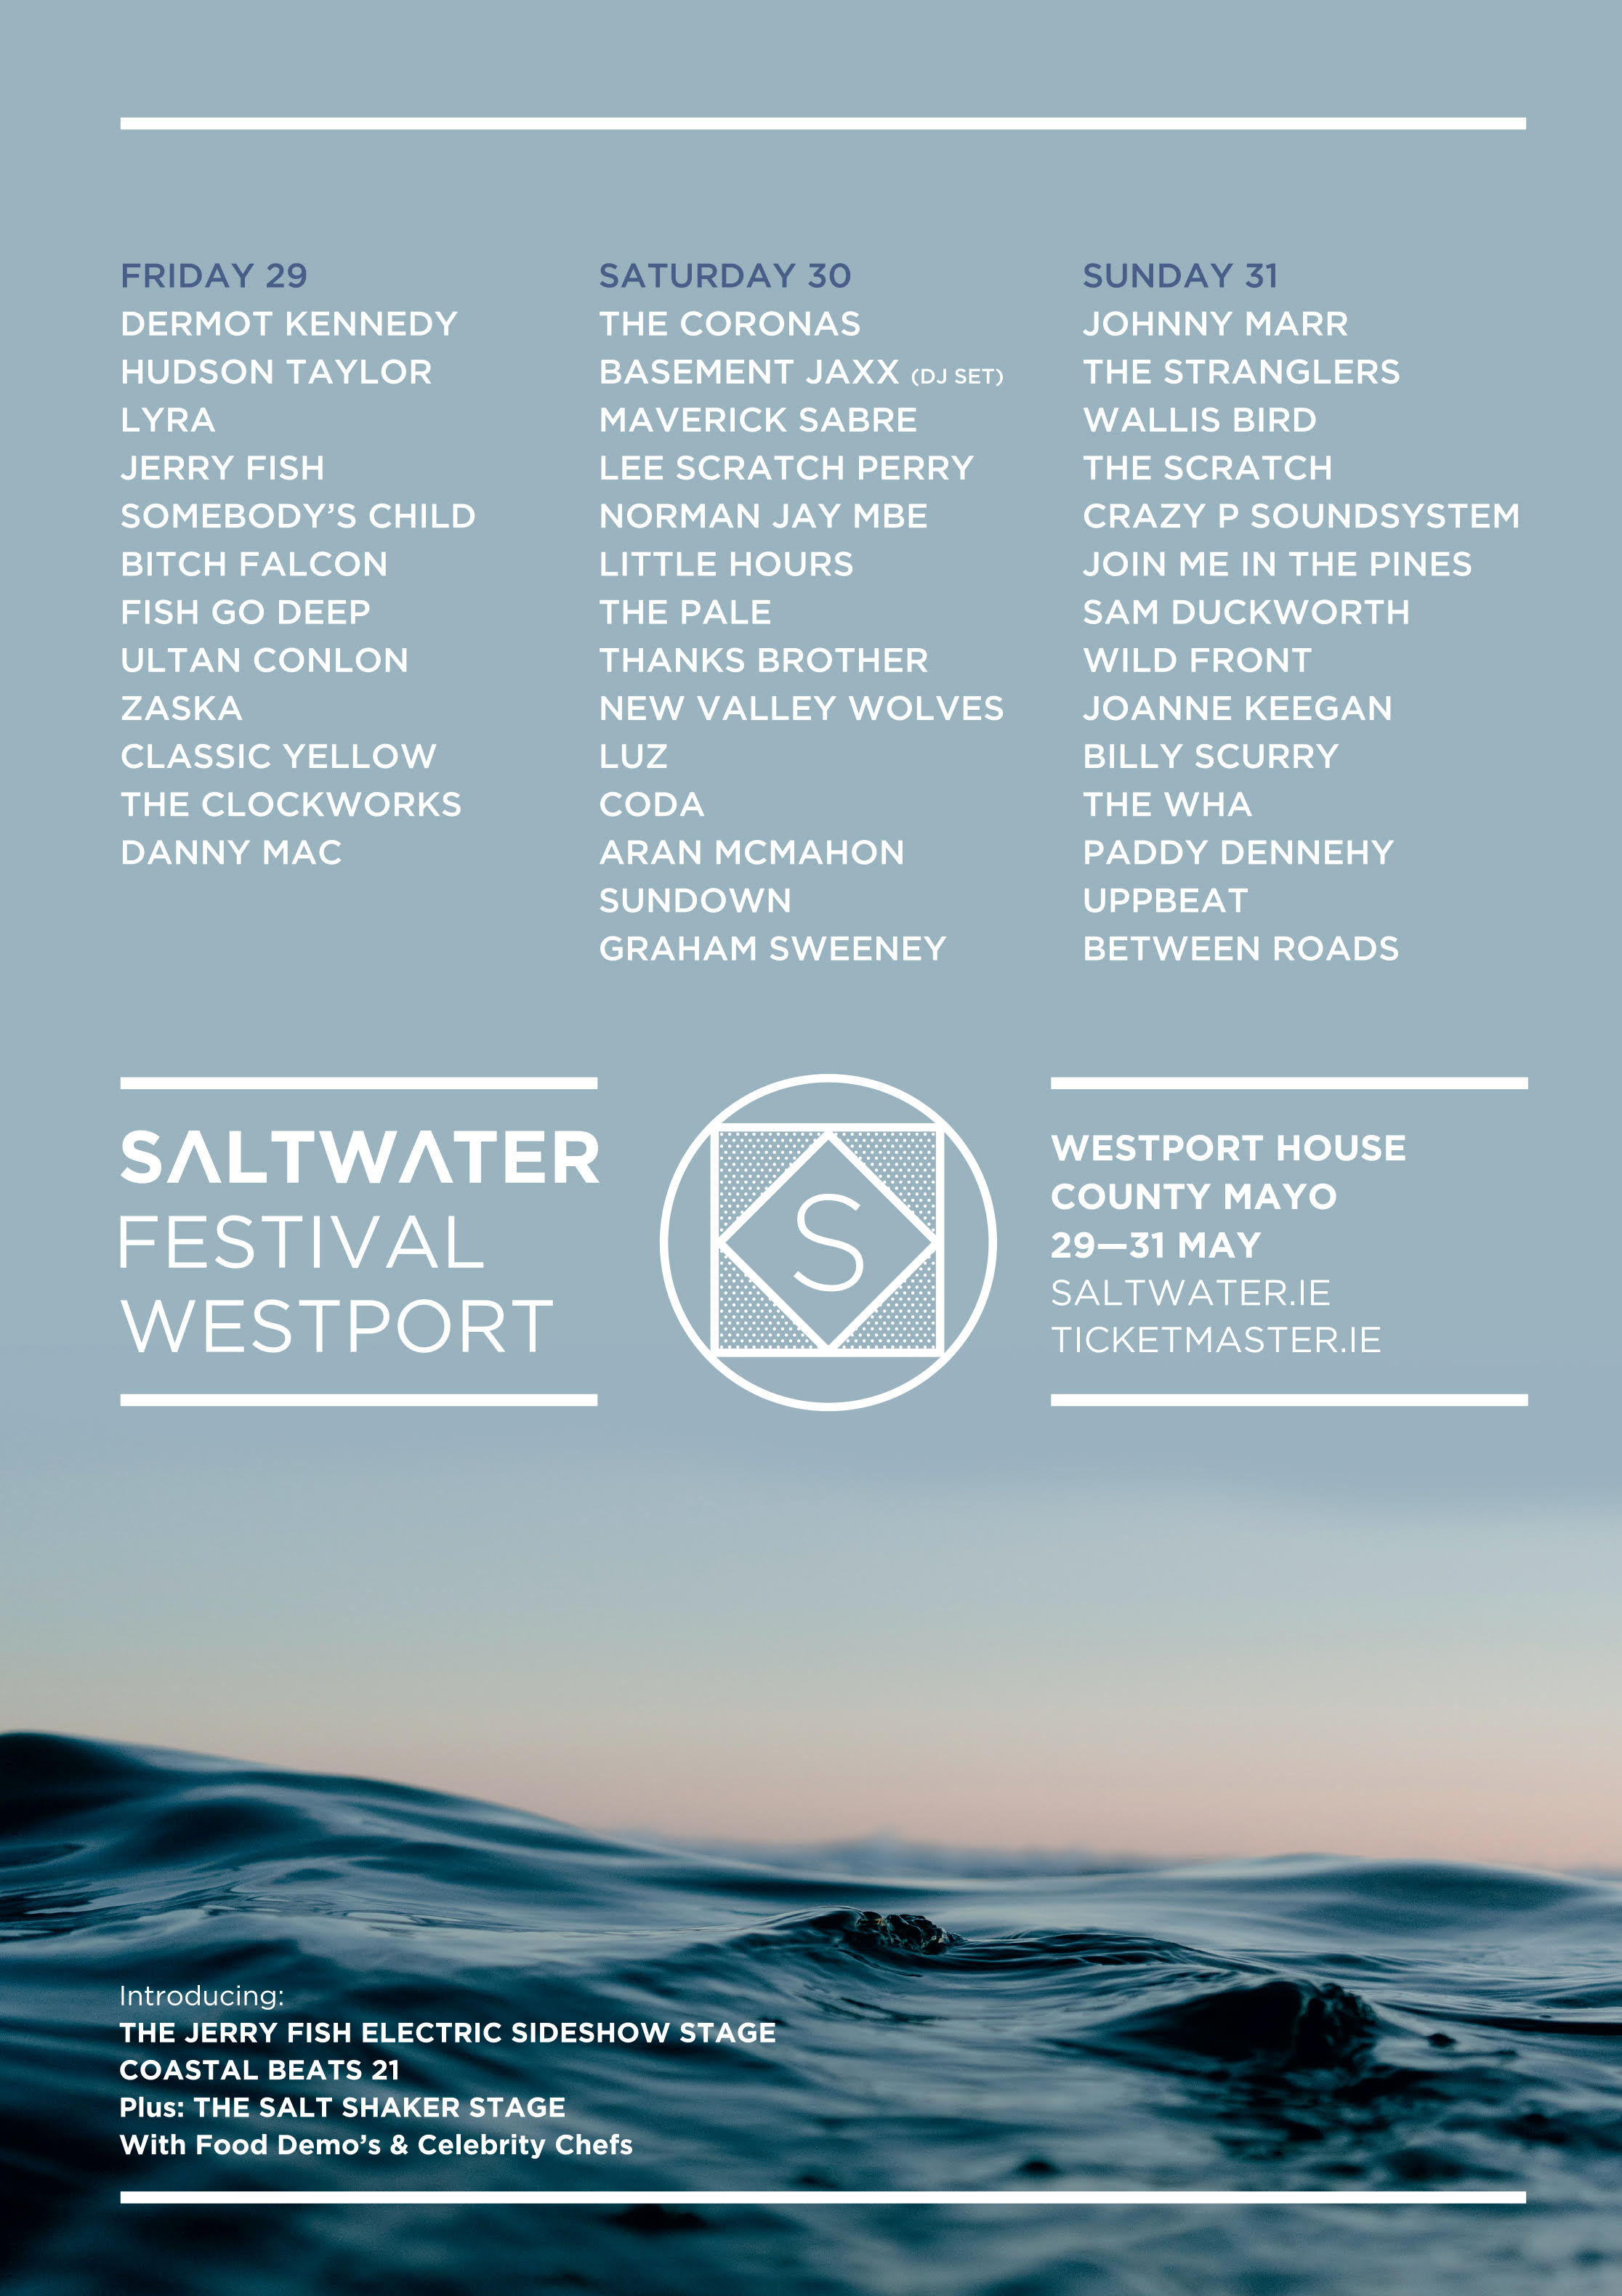 Saltwater 2020 adds new acts and announce daily breakdown